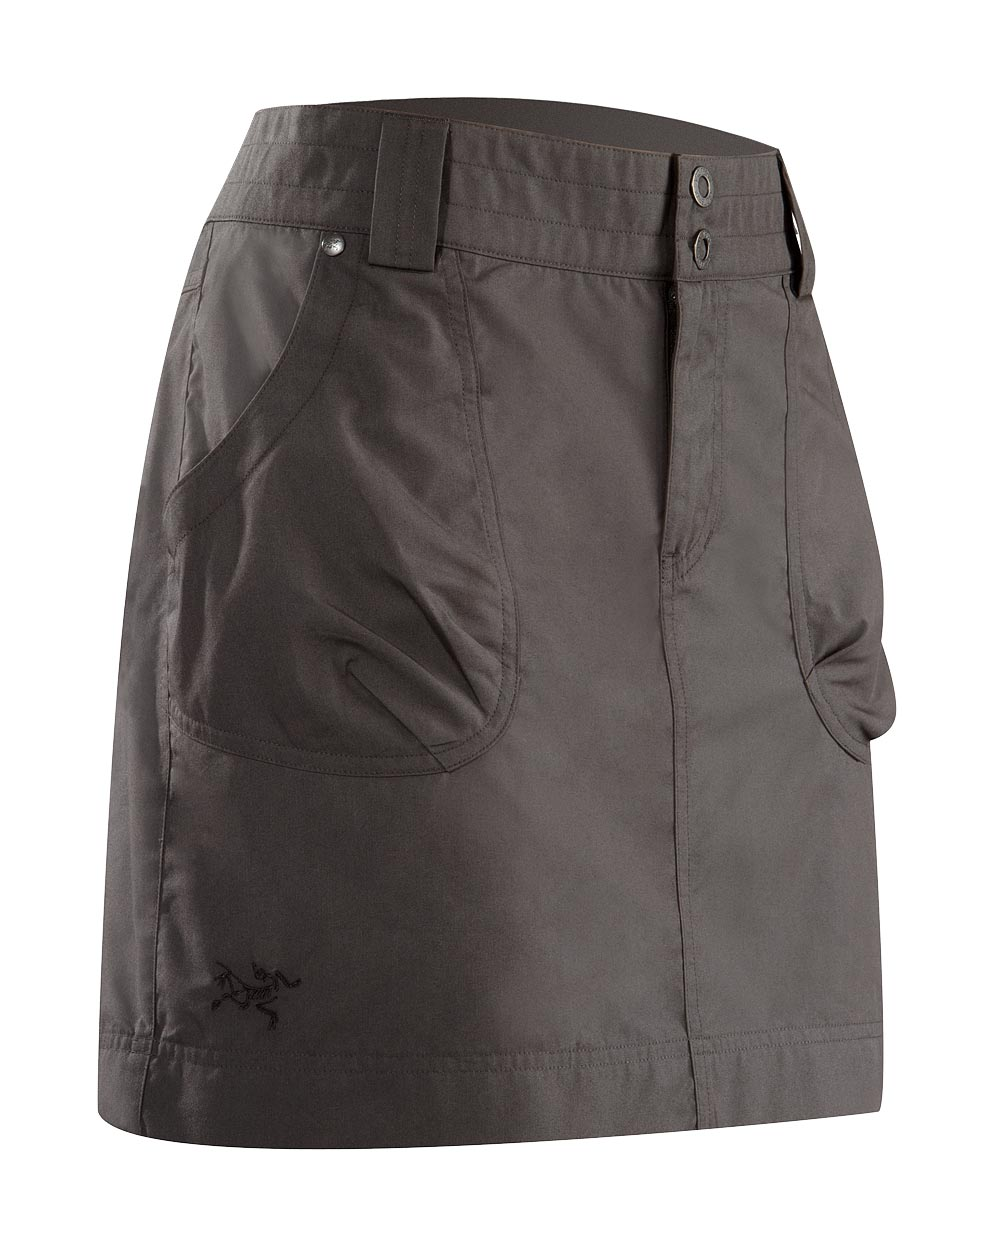 Arcteryx Graphite Rana Skirt - New